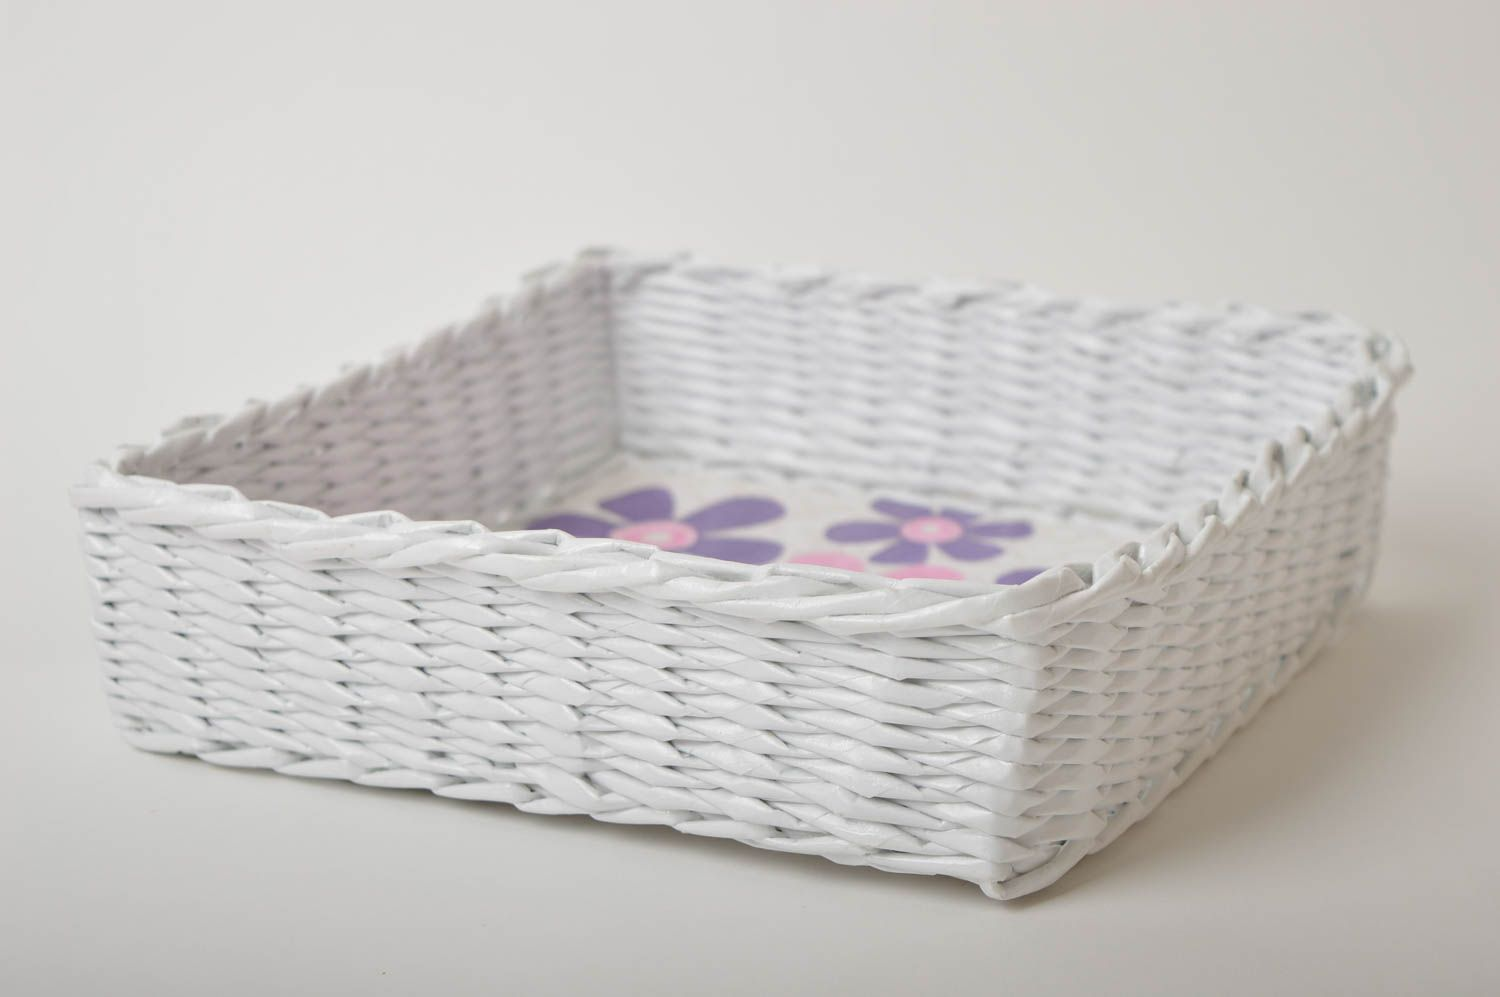 Handmade decorations woven basket paper basket gifts for women home decor photo 2